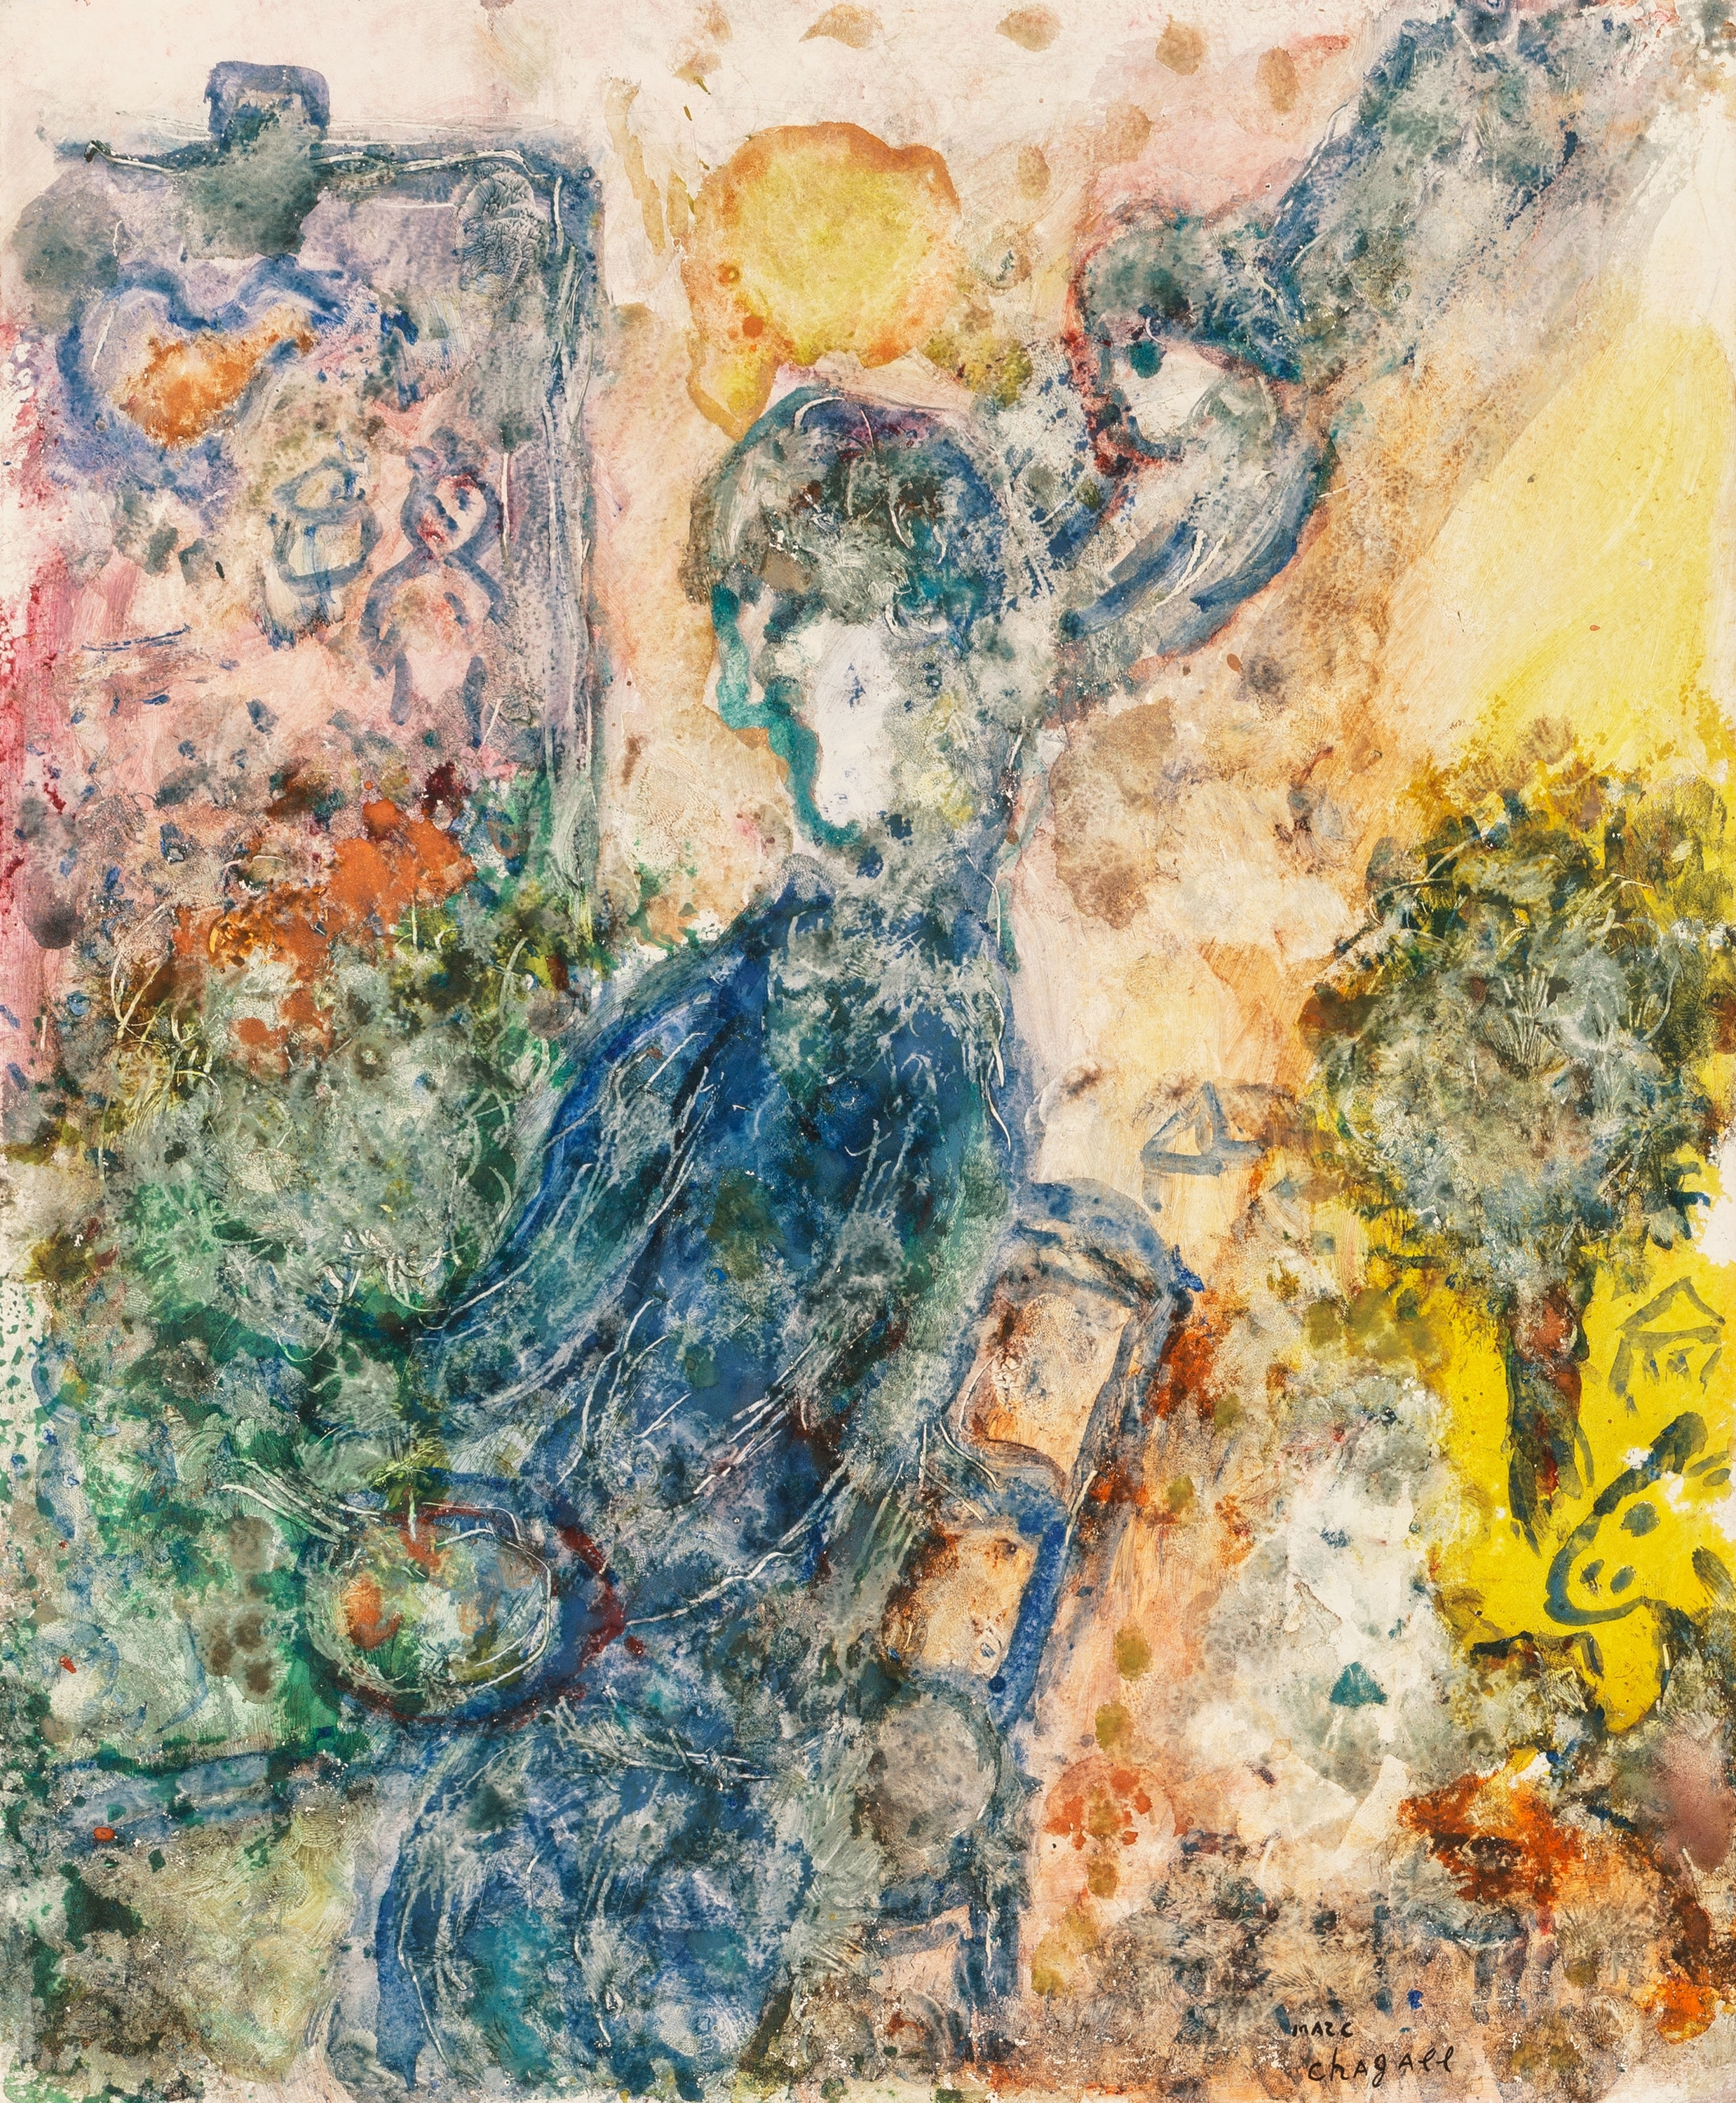 Marc chagall le peintre la palette 1983 for Chagall peintre